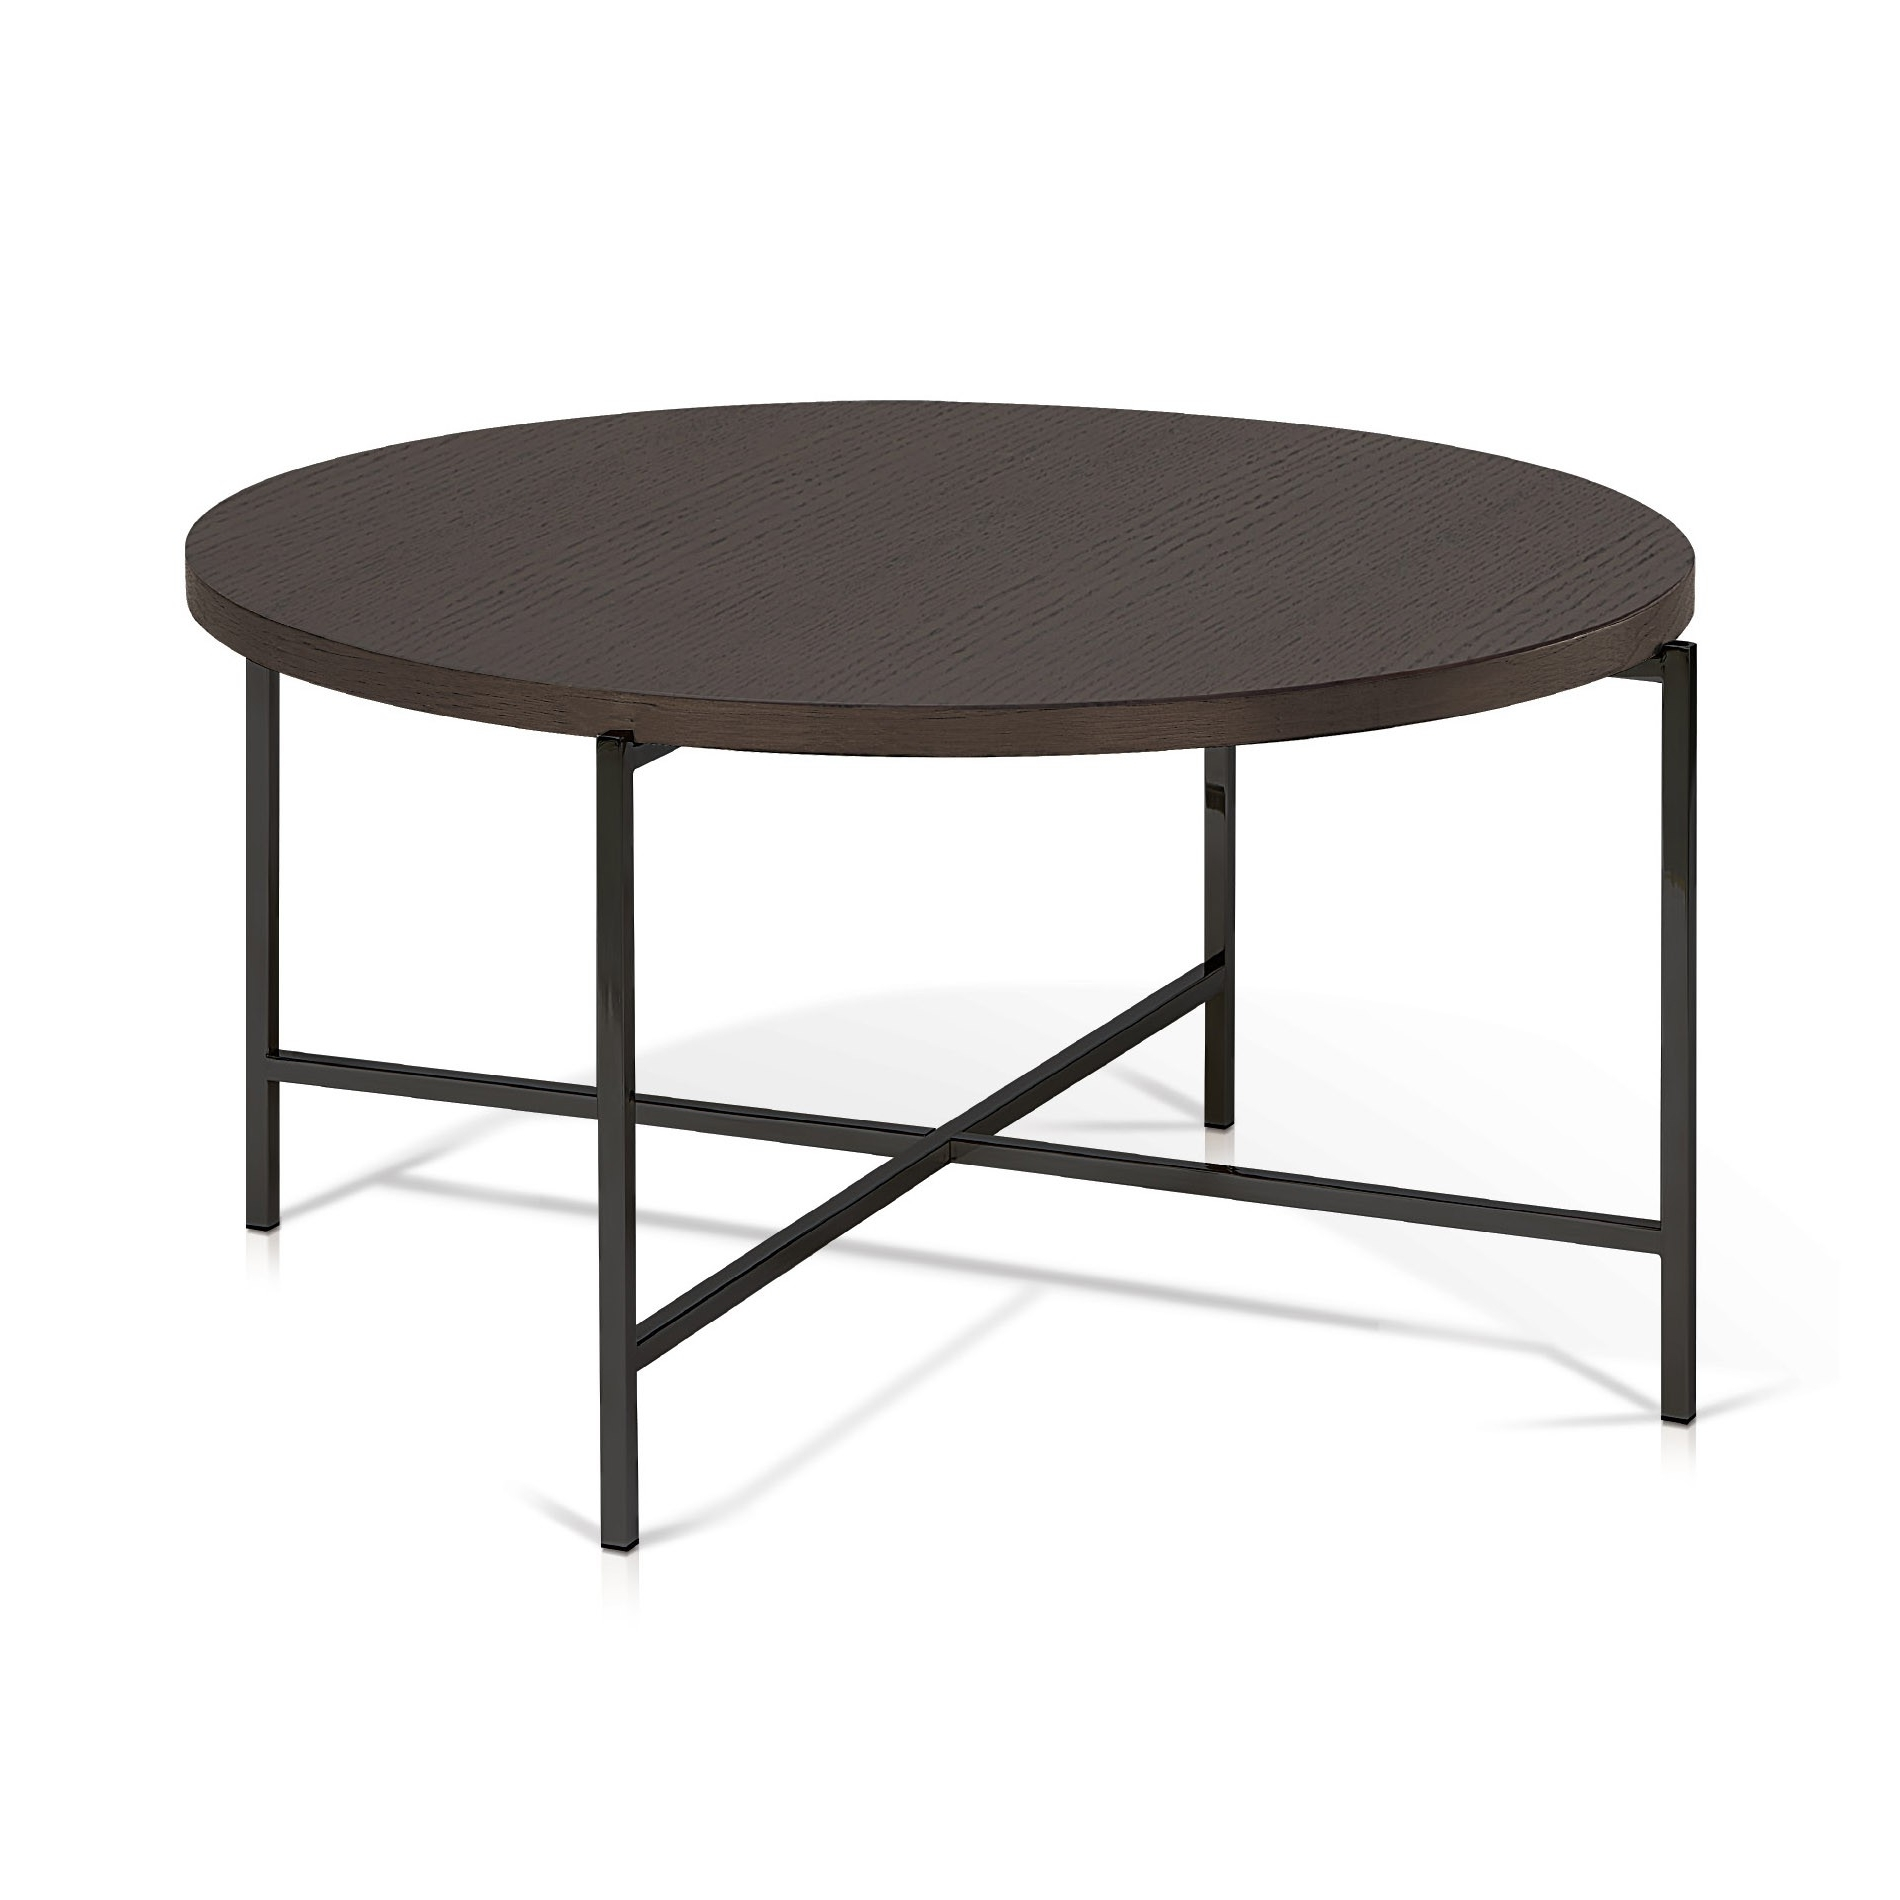 Best And Newest Smoked Oak Coffee Tables Regarding Korson Sef2531 Bergen – Smoked Oak Top Round Coffee Table (View 4 of 20)